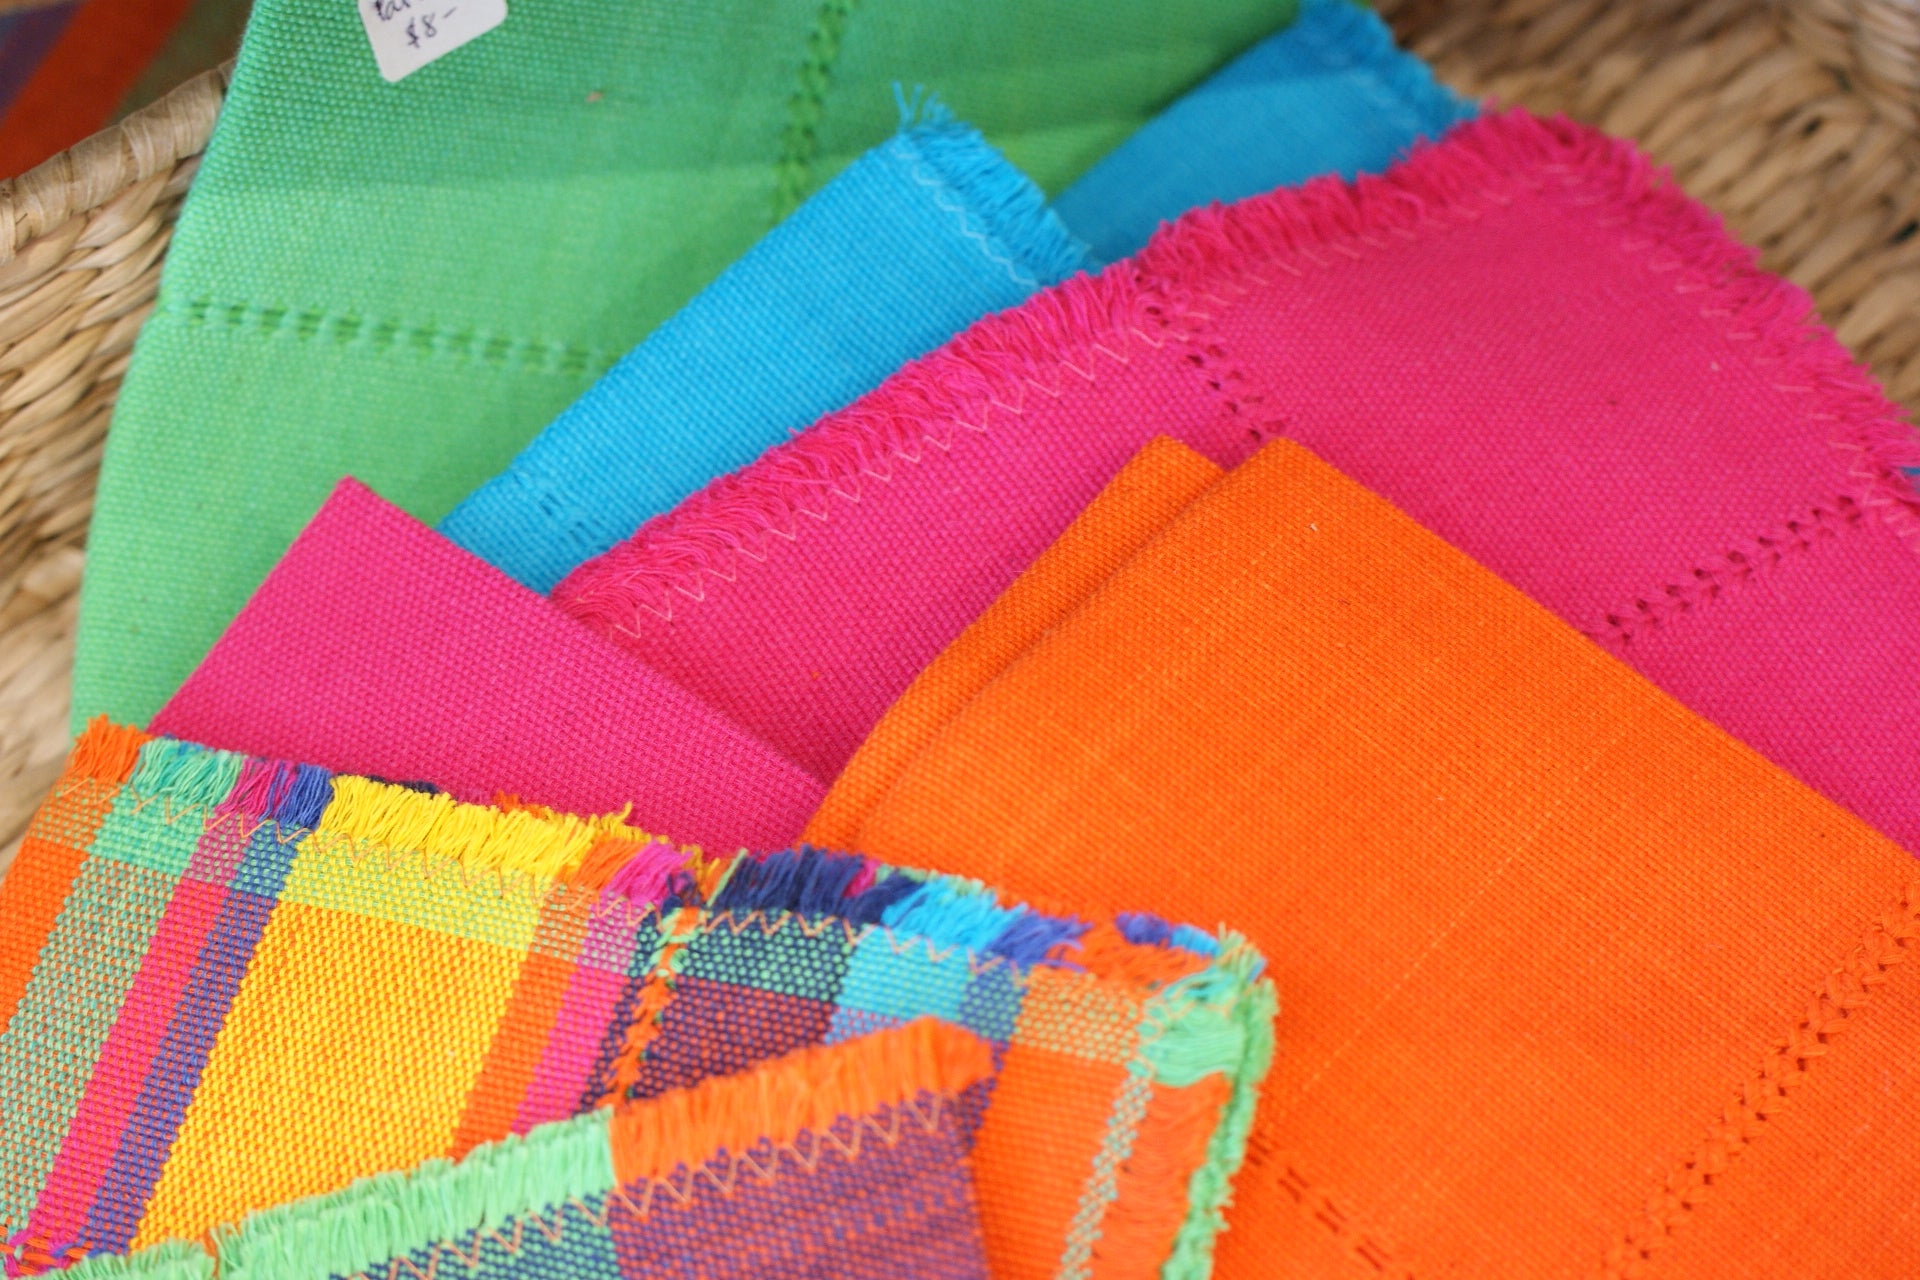 Woven Cotton Tablecloth From Michoacan · Michoacan Cotton Textiles